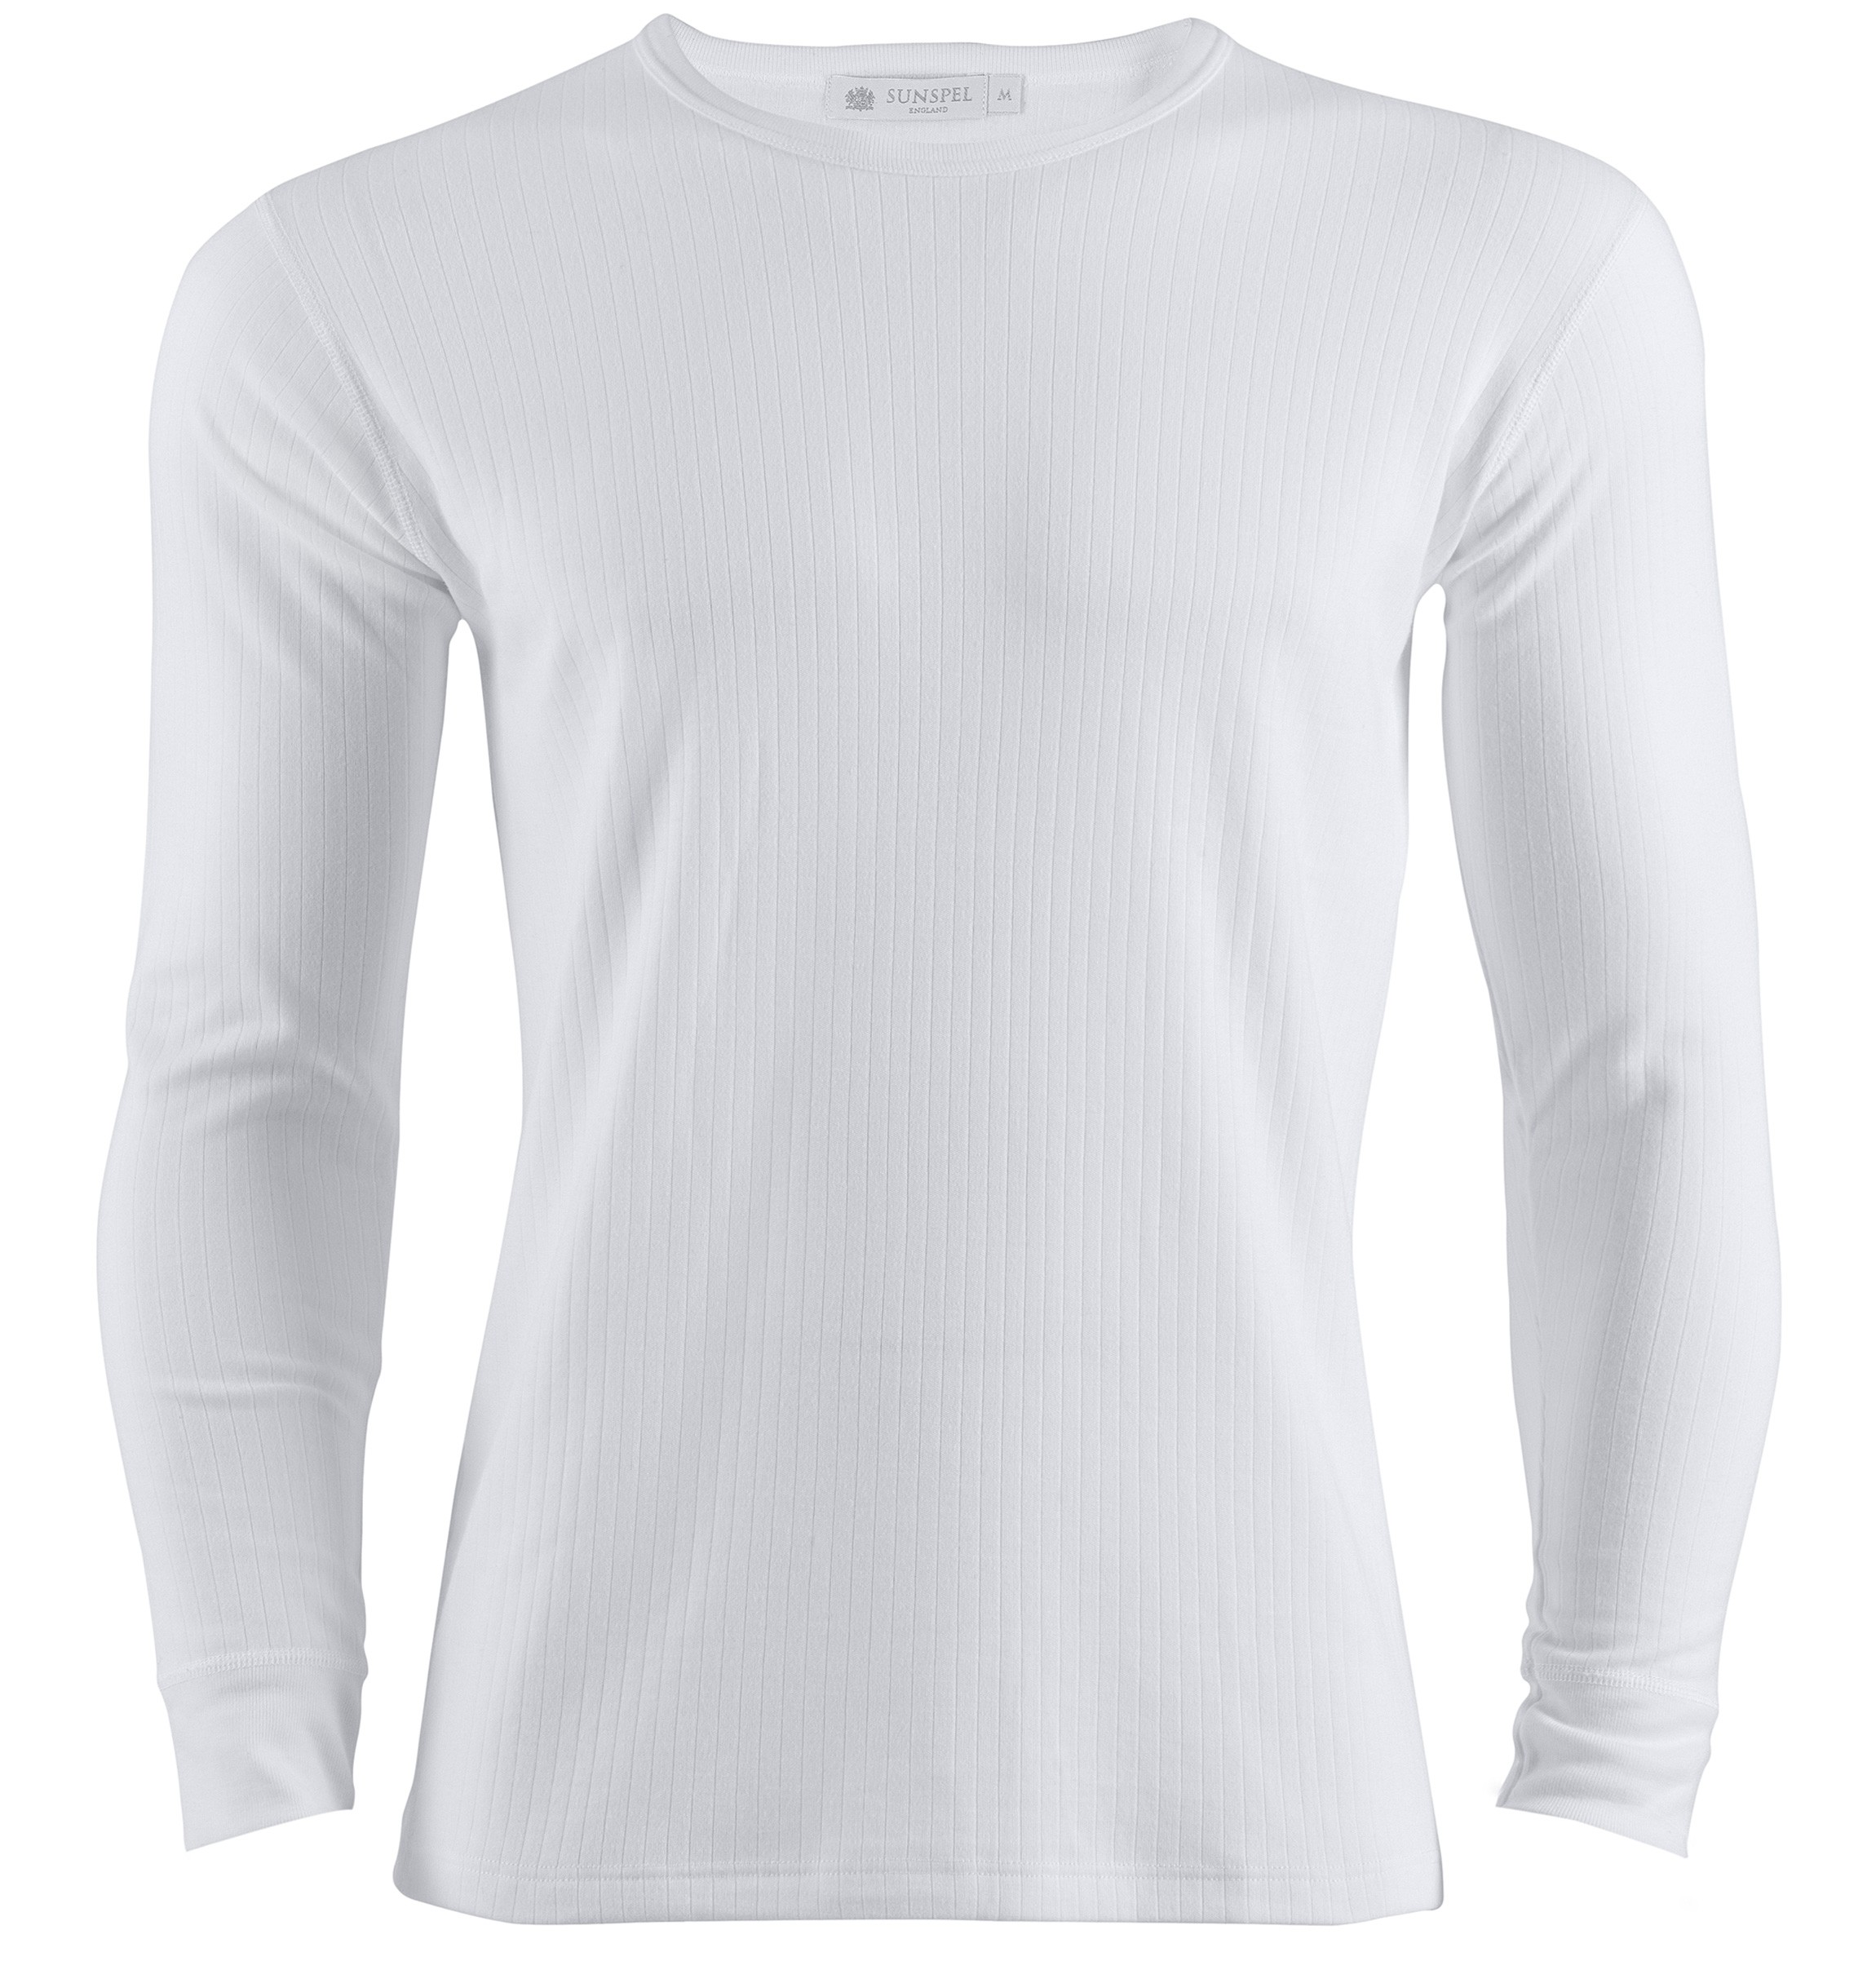 Find great deals on eBay for long sleeve white tees. Shop with confidence.